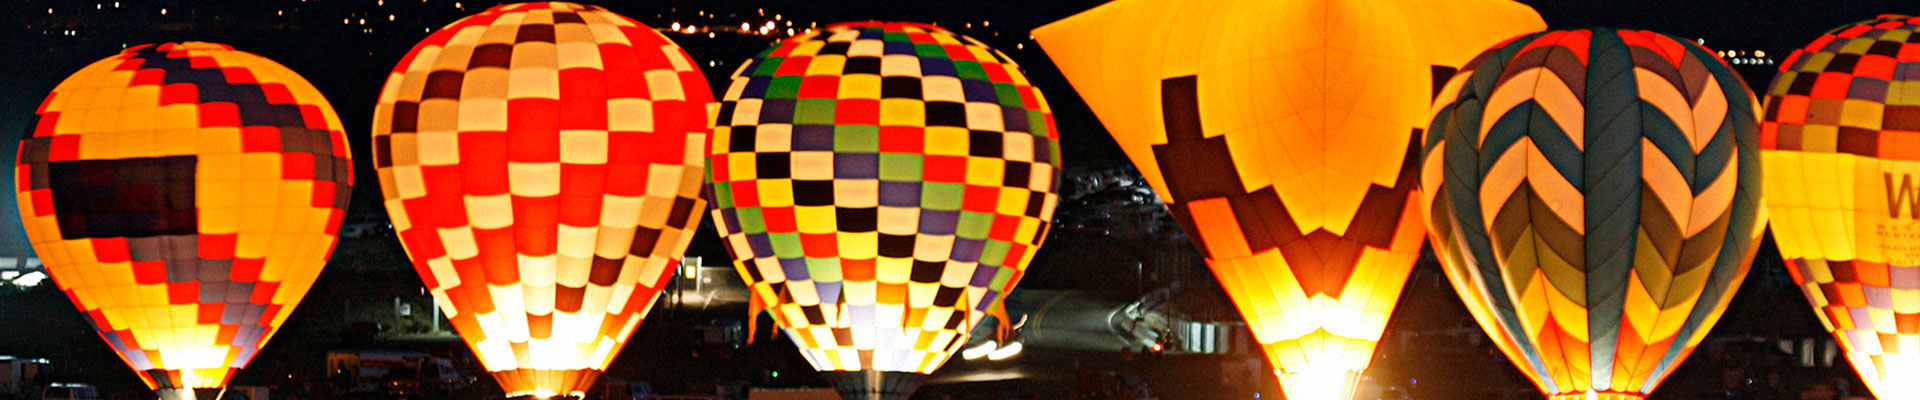 Fantasy RV Tours: 5 Day Balloon Fiesta (05UABP-100721)